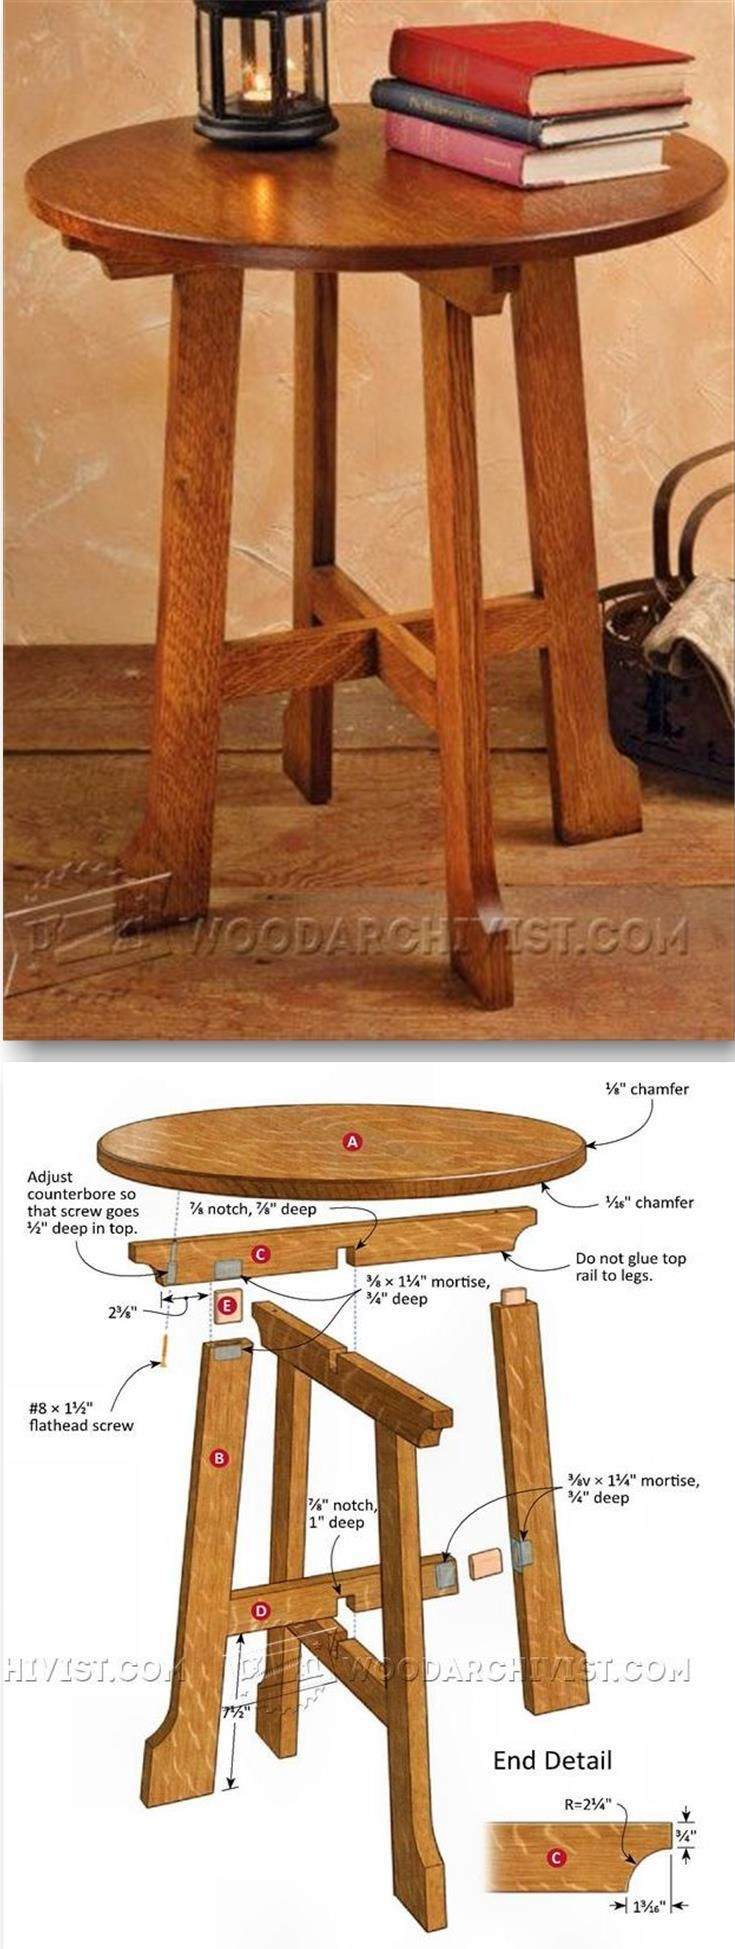 Arts and Crafts End Table Plans   Furniture Plans and Projects   Woodwork   Woodworking  Woodworking Plans  Woodworking Projects. Best 25  End table plans ideas on Pinterest   End tables  Wood end